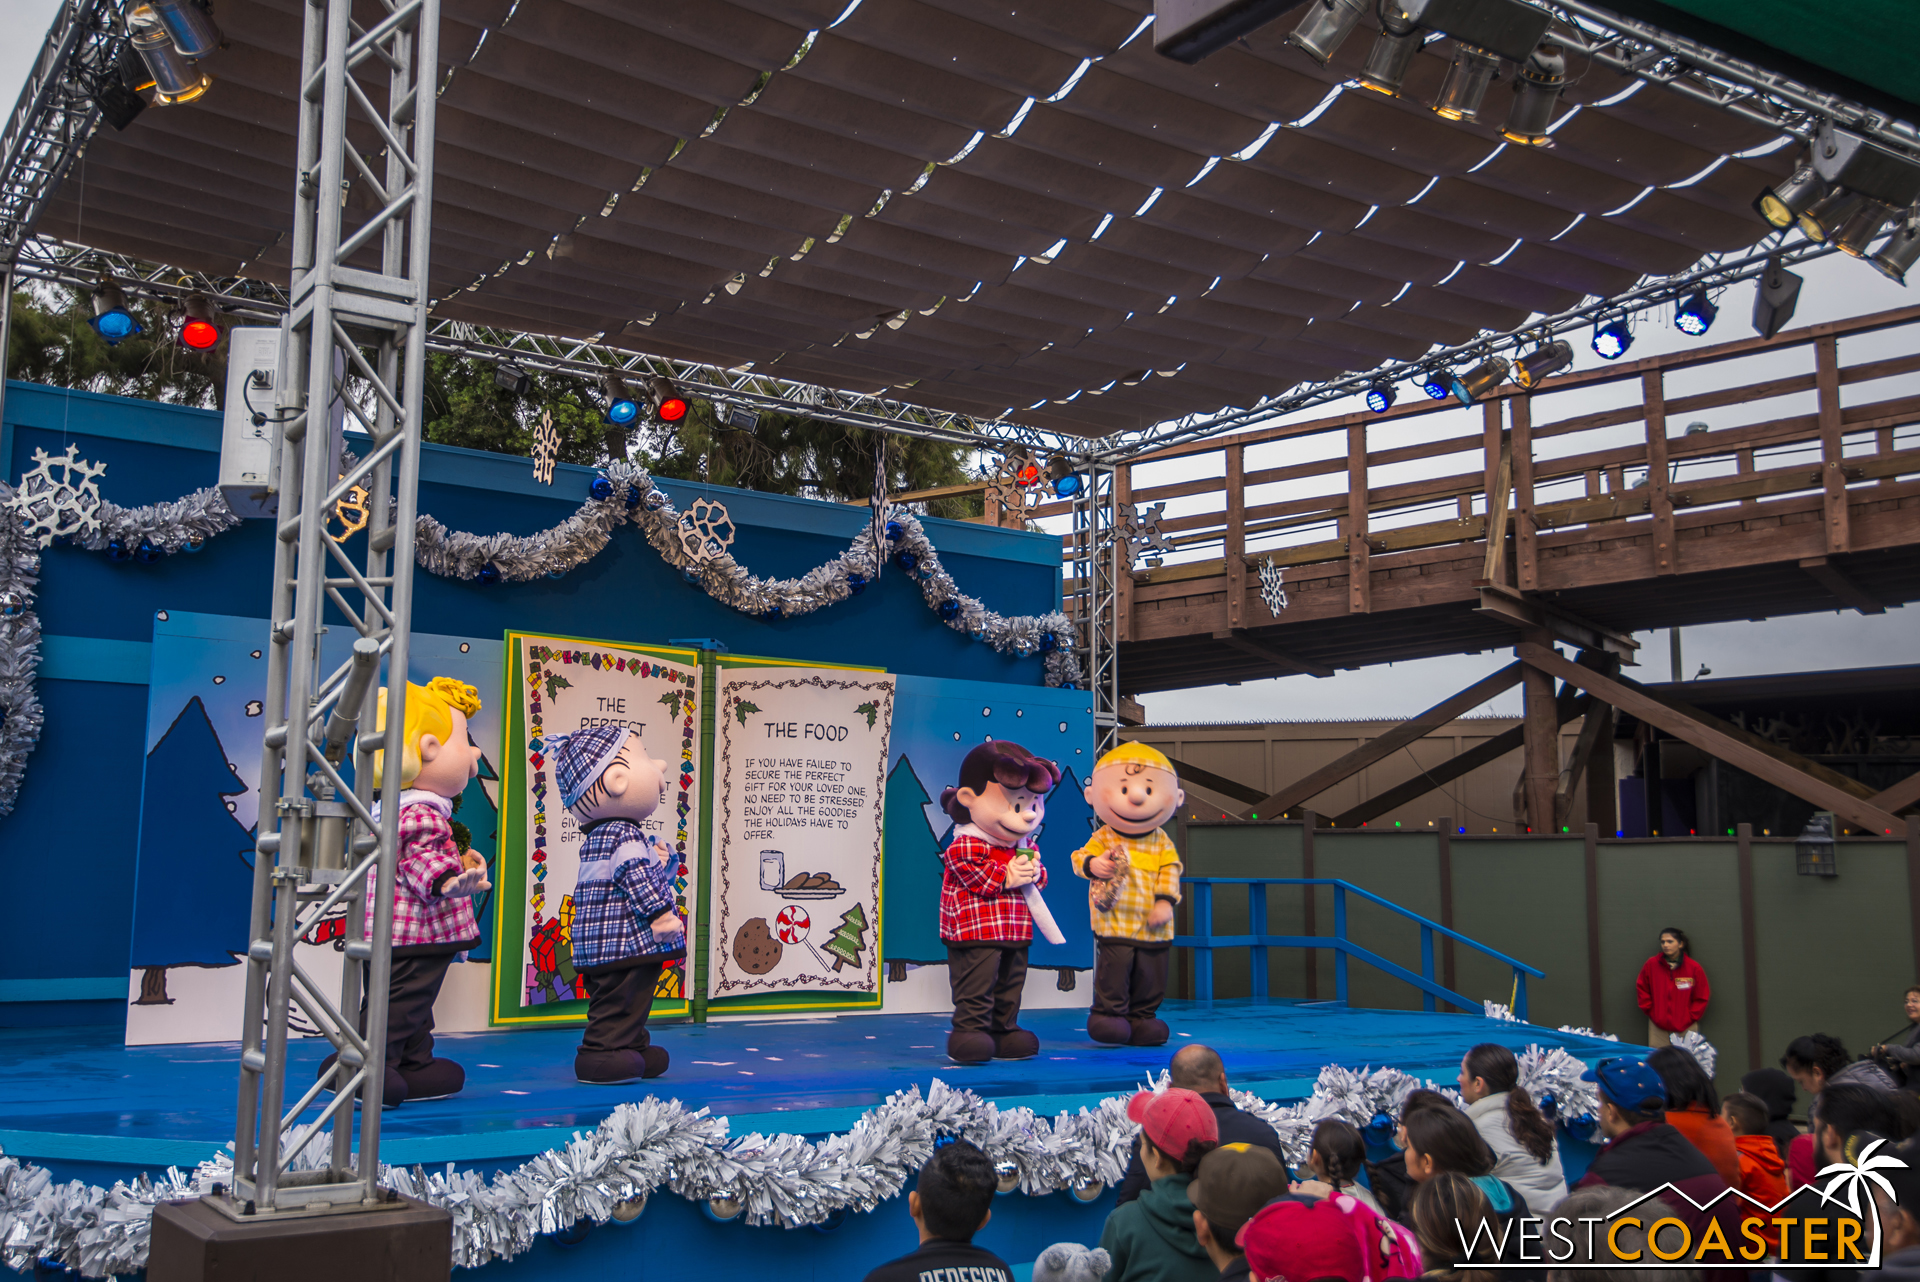 This is one of several Peanuts Christmas shows at Knott's Merry Farm.